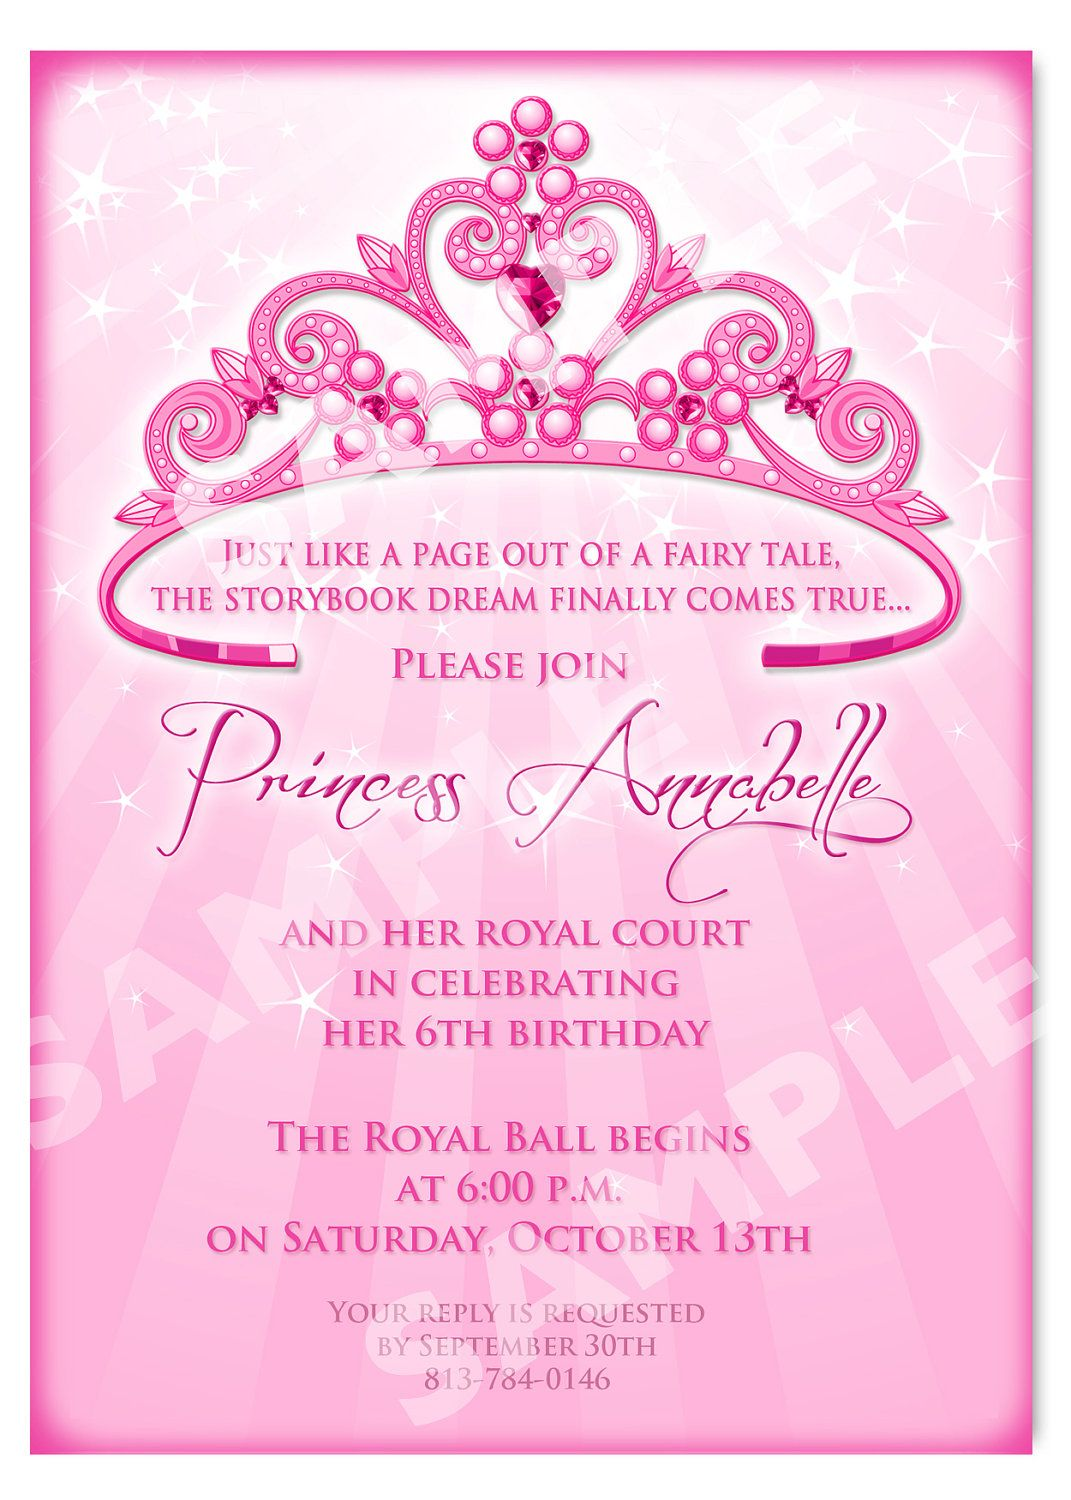 Birthday invitation cards templates free download tiredriveeasy birthday invitation cards templates free download 41 printable birthday party stopboris Image collections